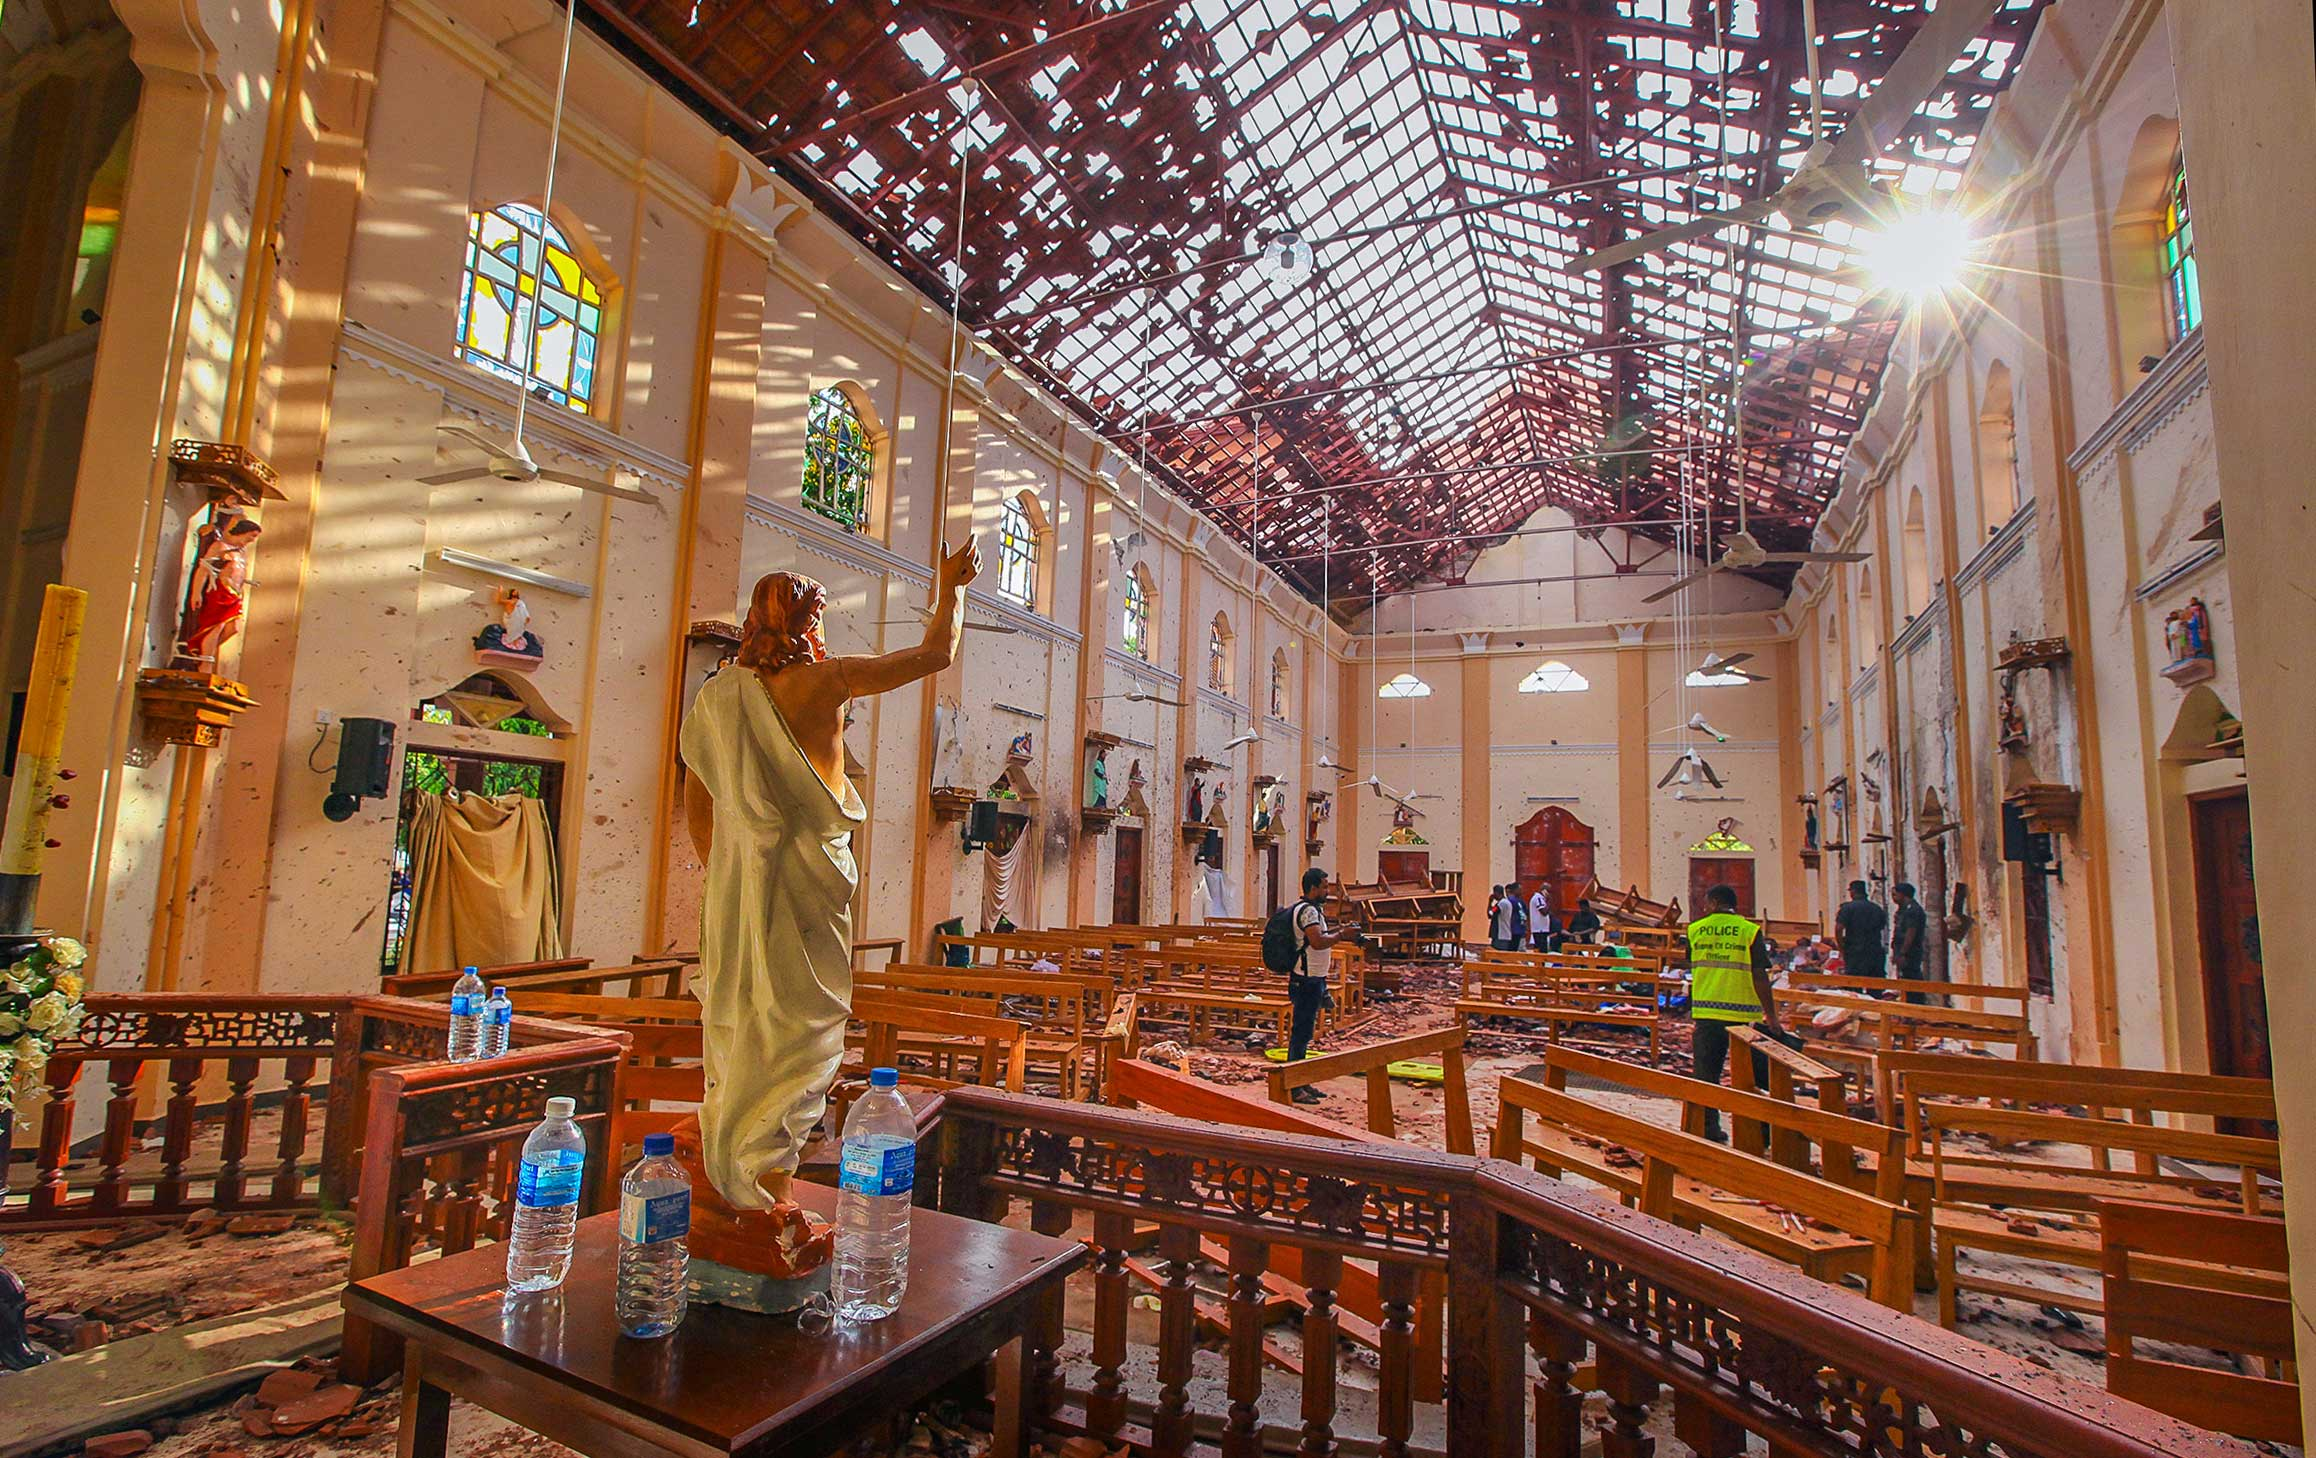 A view of St. Sebastian's Church, which was damaged in a bomb blast in Negombo, Sri Lanka, on April 21, 2019.